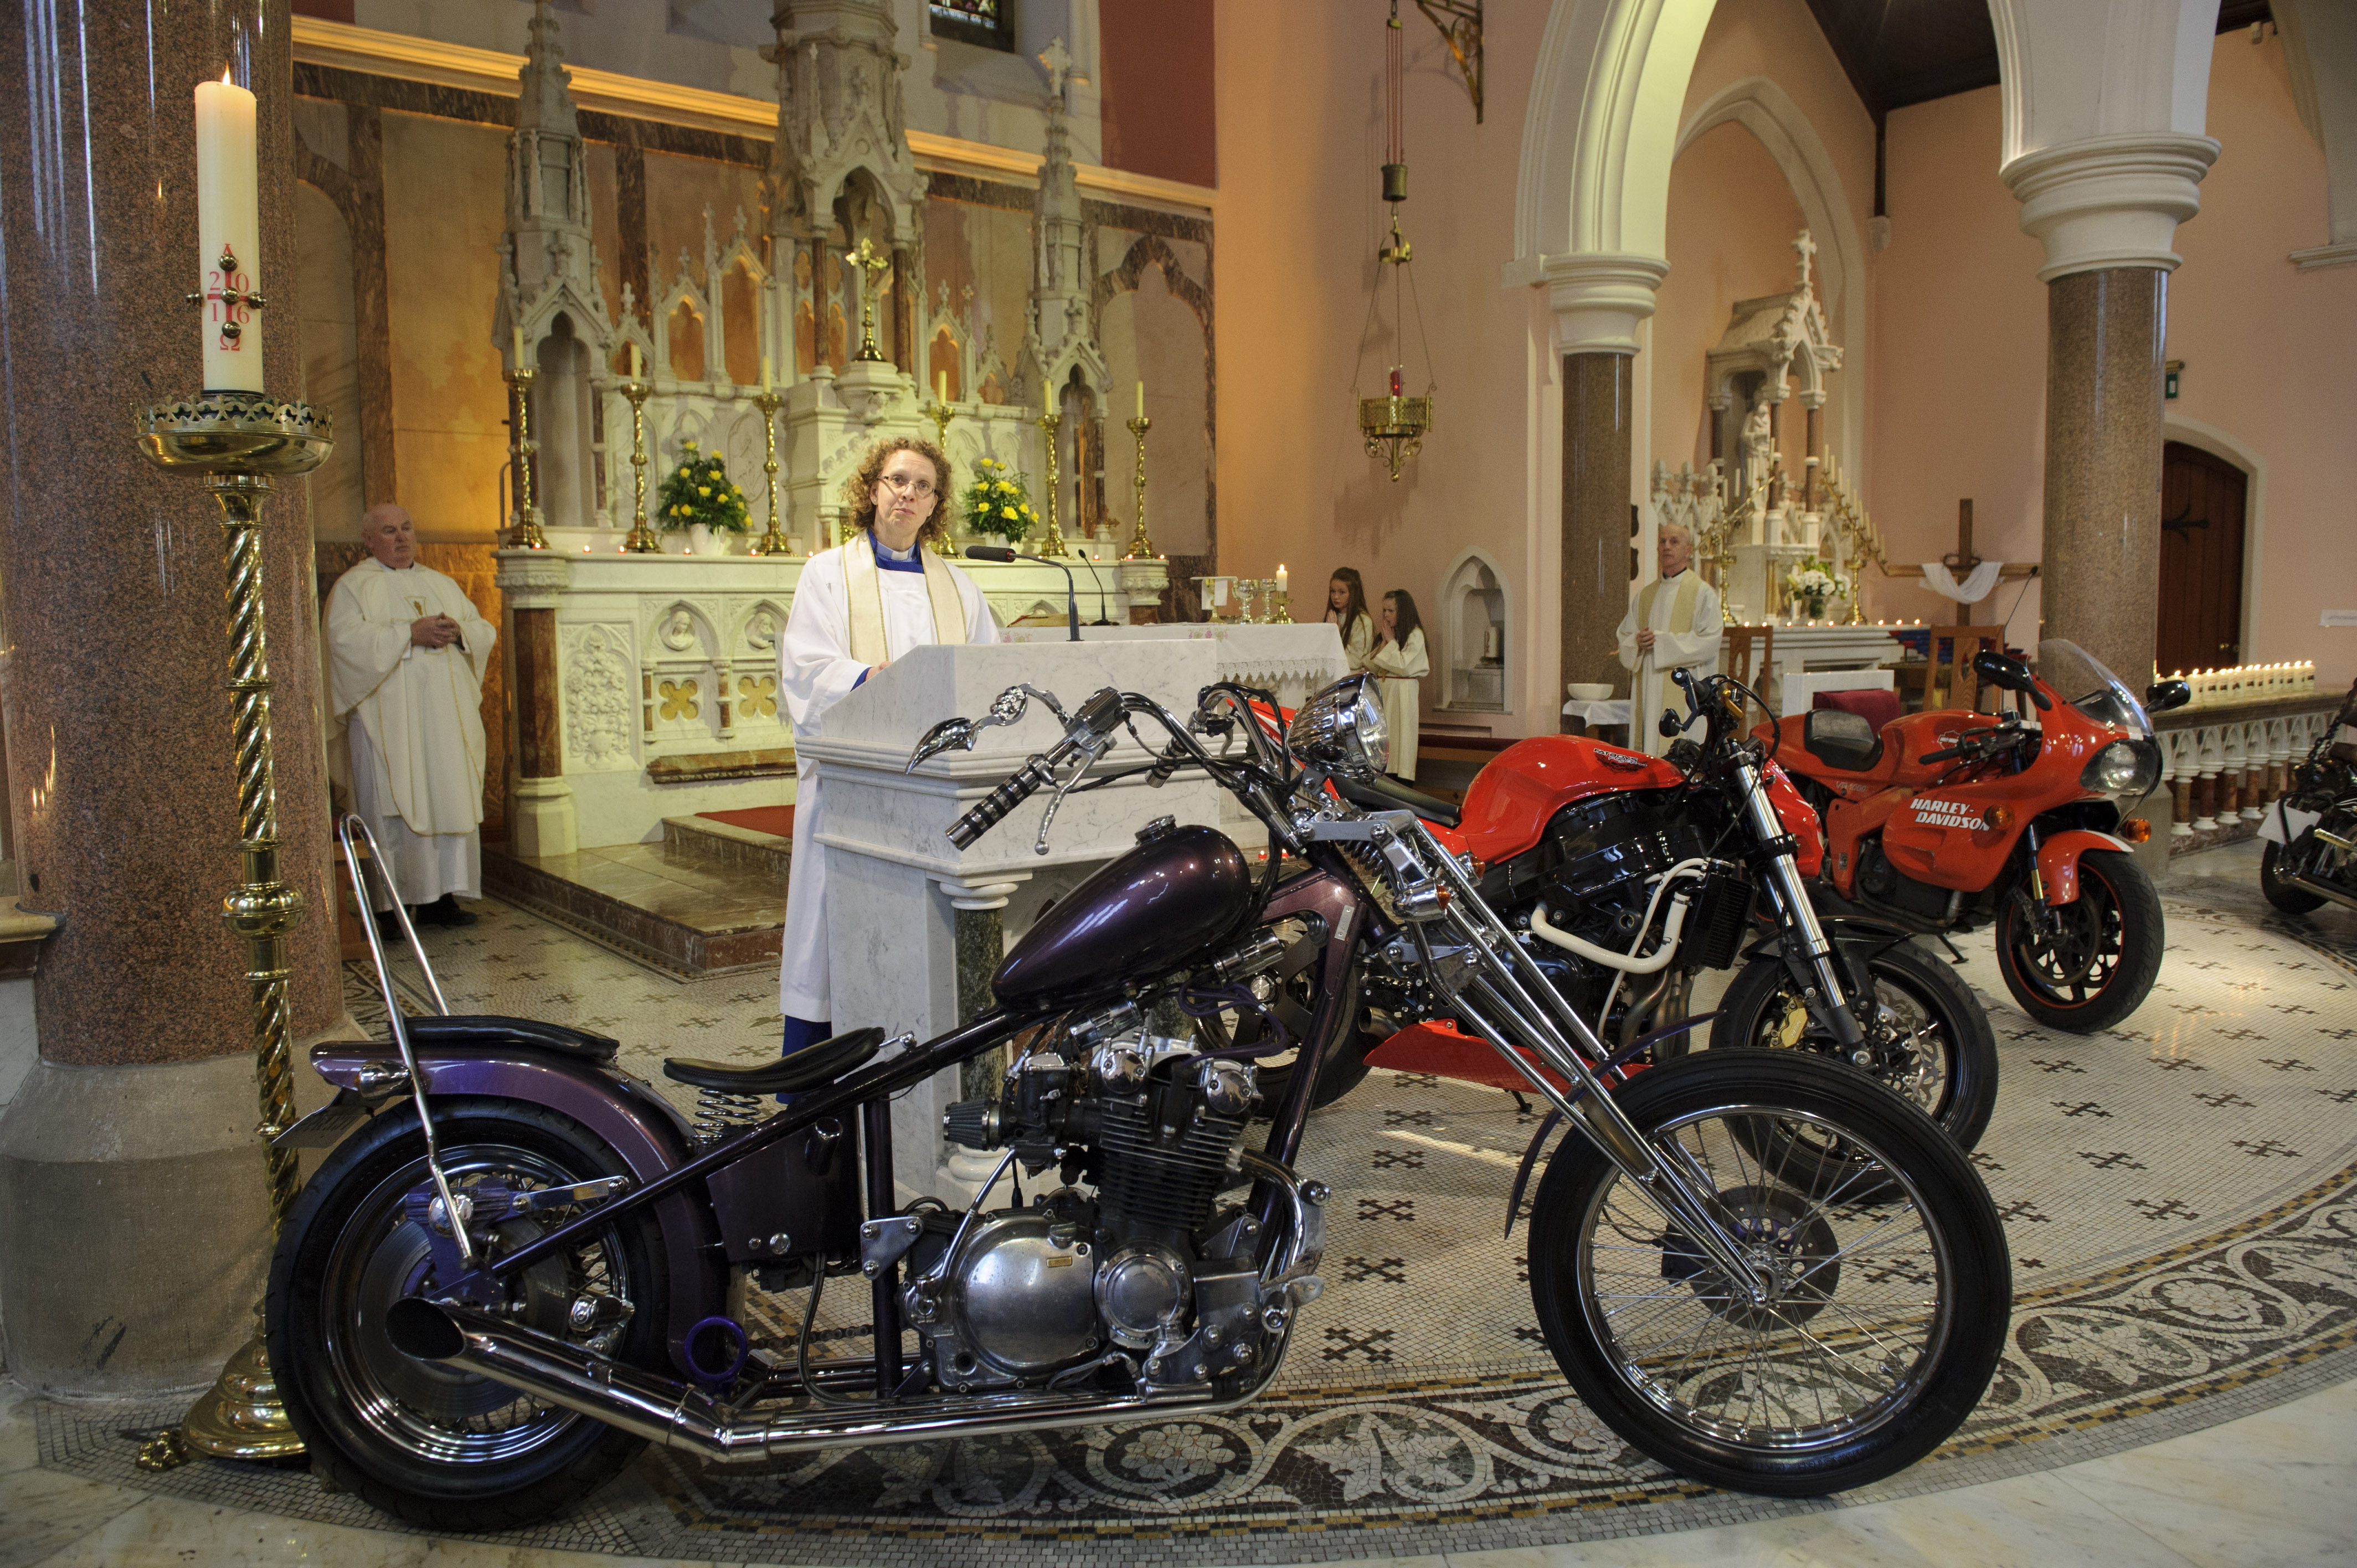 Archdeacon Helene Steed speaking at the Gone But Not Forgotten Bikers Mass. ©Rory Geary/The Northern Standard